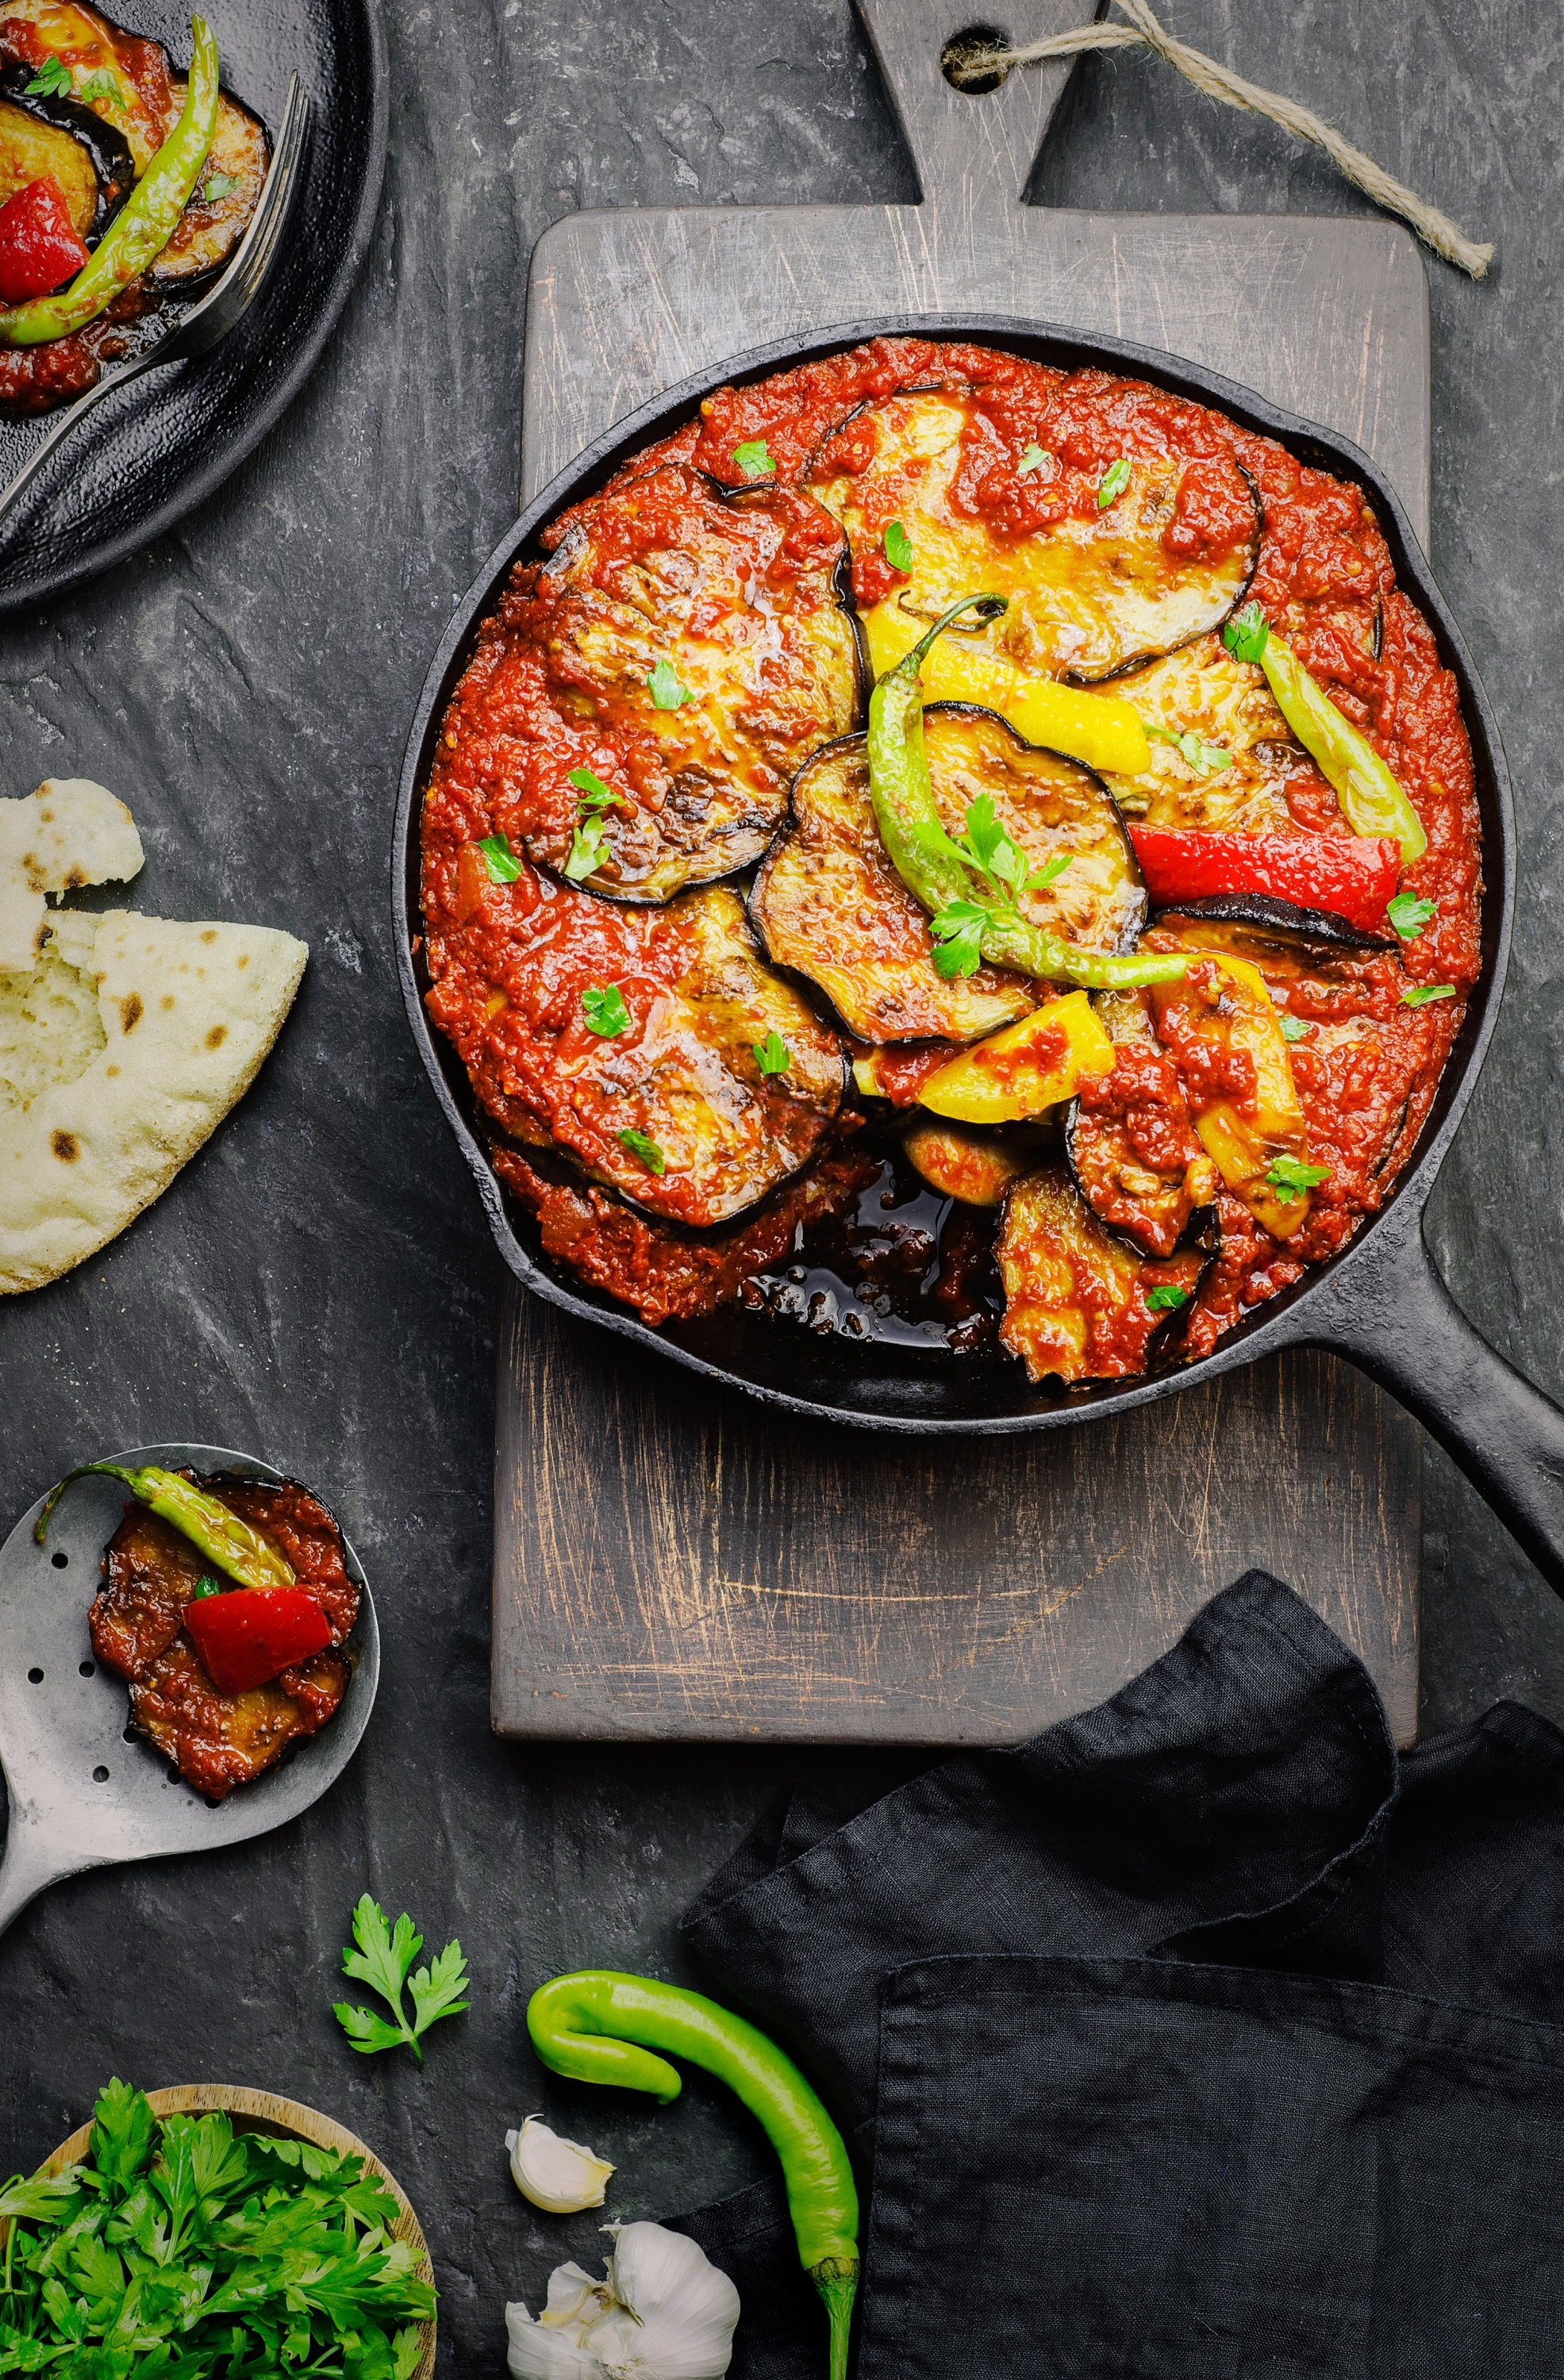 Eggplant moussaka is great on its own but you could also have it with gluten-free pita or naan. (Shutterstock Photo)